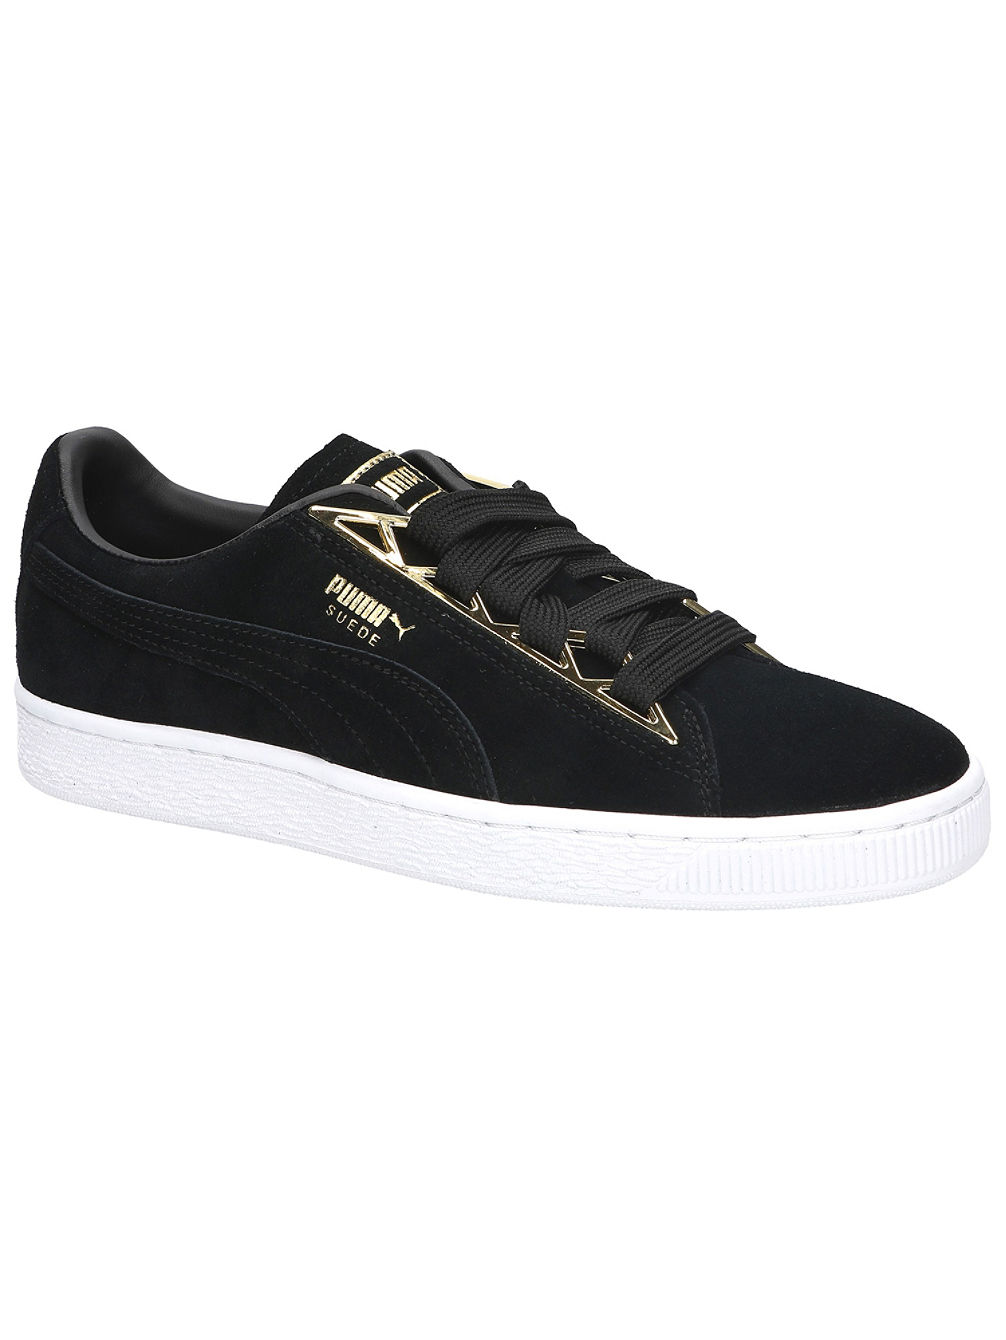 cheap for discount db57f 7114b Suede Jewel Metalic Sneakers